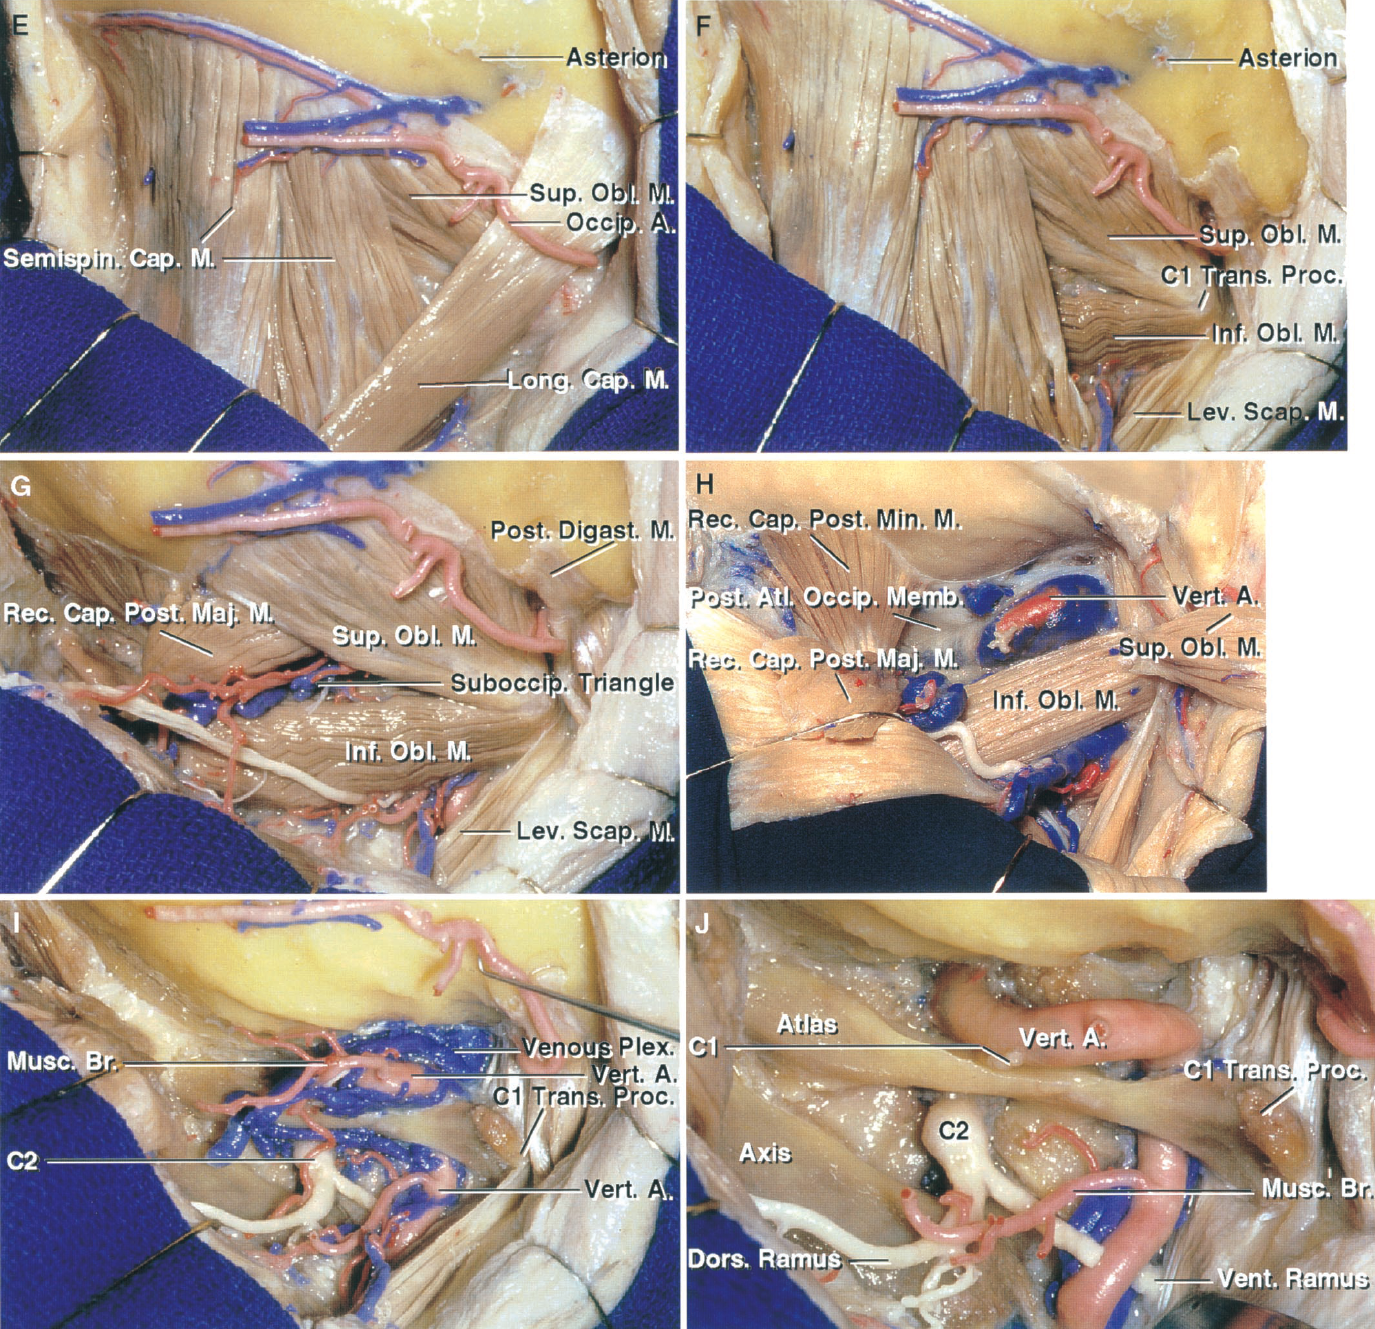 FIGURE 7.2. E–J. Far-lateral and transcondylar approach. E, the fascia has been removed to expose the occipital artery passing behind the superior oblique and semispinalis. F, the longissimus capitis has been reflected to expose the attachment of the superior and inferior oblique muscles to the C1 transverse process. G, the suboccipital triangle, in the depths of which the vertebral artery courses behind the atlanto-occipital joint and across the posterior arch of C1, is situated in the depths of the area between the superior and inferior oblique and the rectus capitis posterior major. H, the superior oblique muscle has been reflected laterally and the rectus capitis posterior major muscle inferomedially. The floor of the suboccipital triangle is formed by the posterior atlanto-occipital membrane and the posterior arch of the atlas. The vertebral artery and the C1 nerve root, which are surrounded by the vertebral venous plexus, course along the upper surface of the posterior arch of the atlas. I, the muscles forming the margins of the suboccipital triangle have been reflected to expose the vertebral artery ascending through the C1 transverse process and behind the atlanto-occipital joint and the surrounding venous plexus. J, the venous plexus around the vertebral artery has been removed. The vertebral artery gives off muscular branches, passes medially behind the atlanto-occipital joint and above the posterior arch of C1, and turns upward and anterior to penetrate the dura.